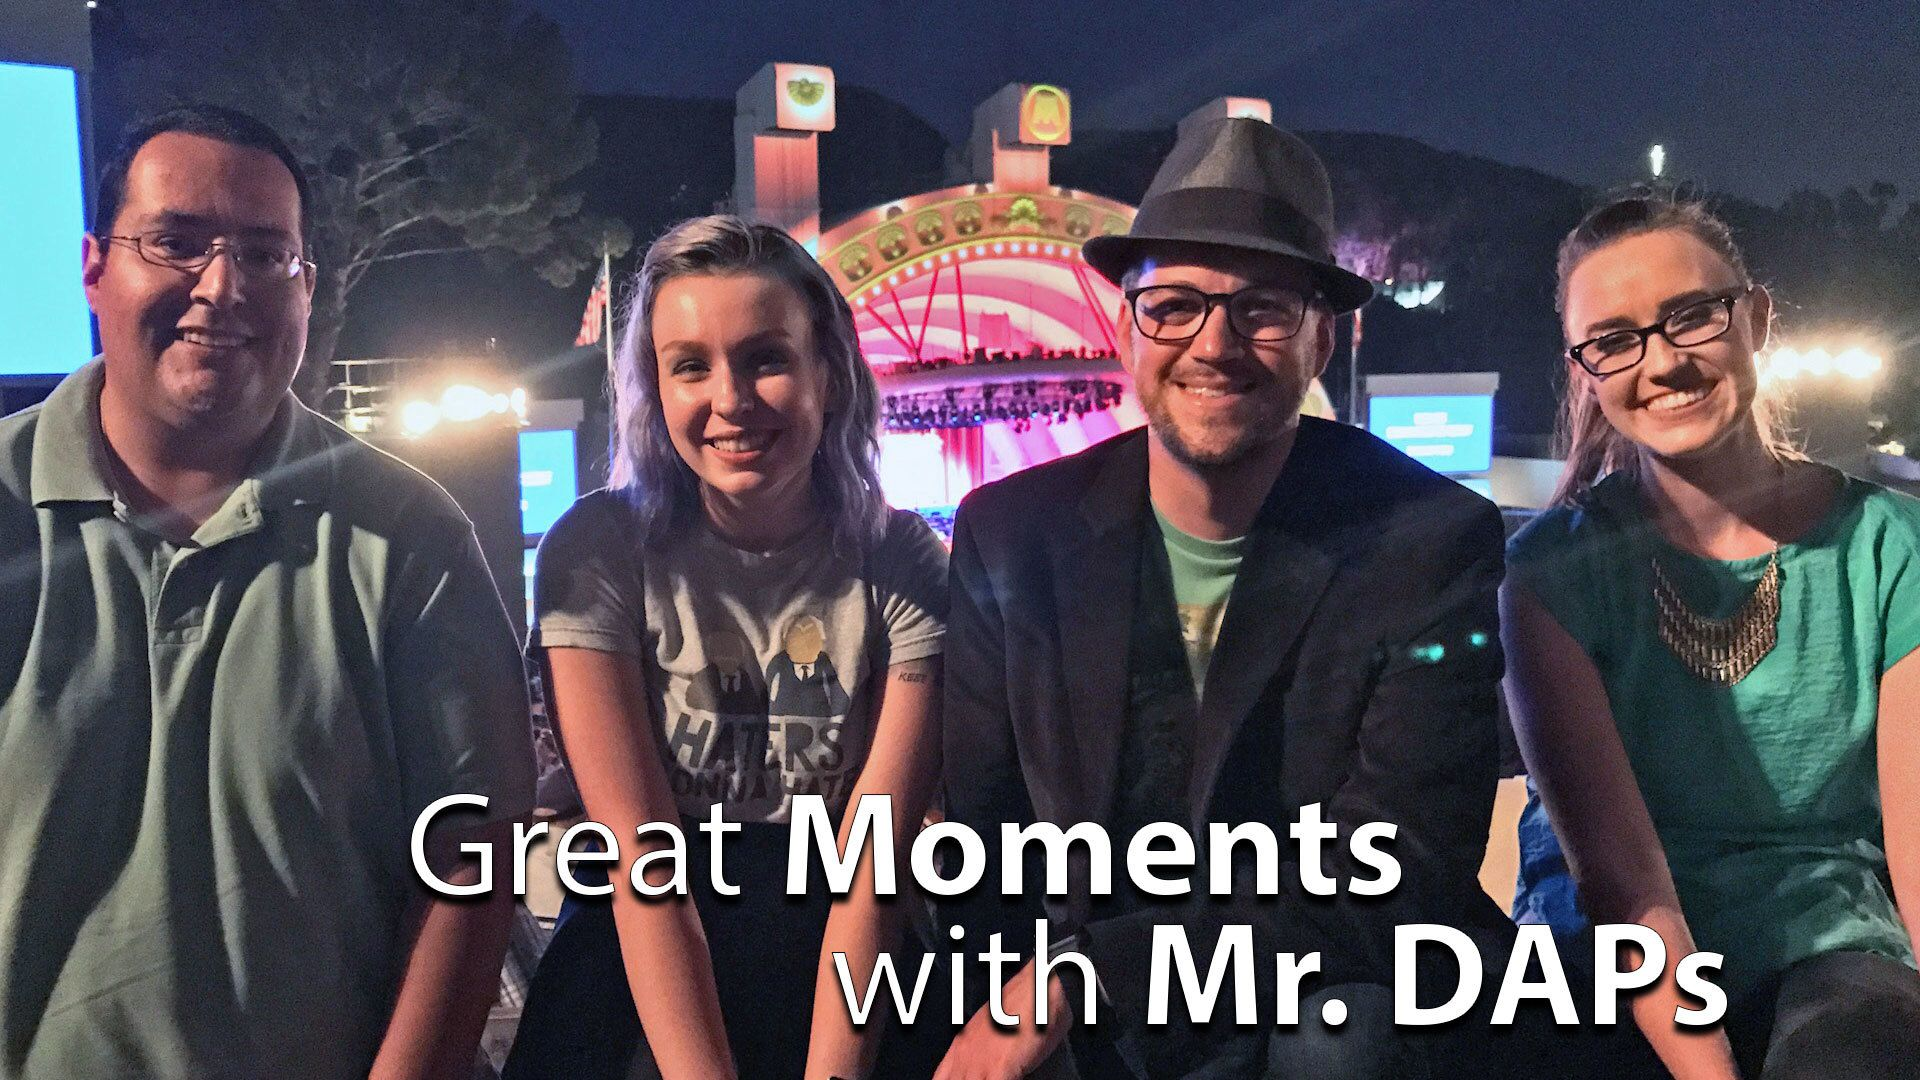 Hurricanes, Muppets, and More! - Great Moments with Mr. DAPs